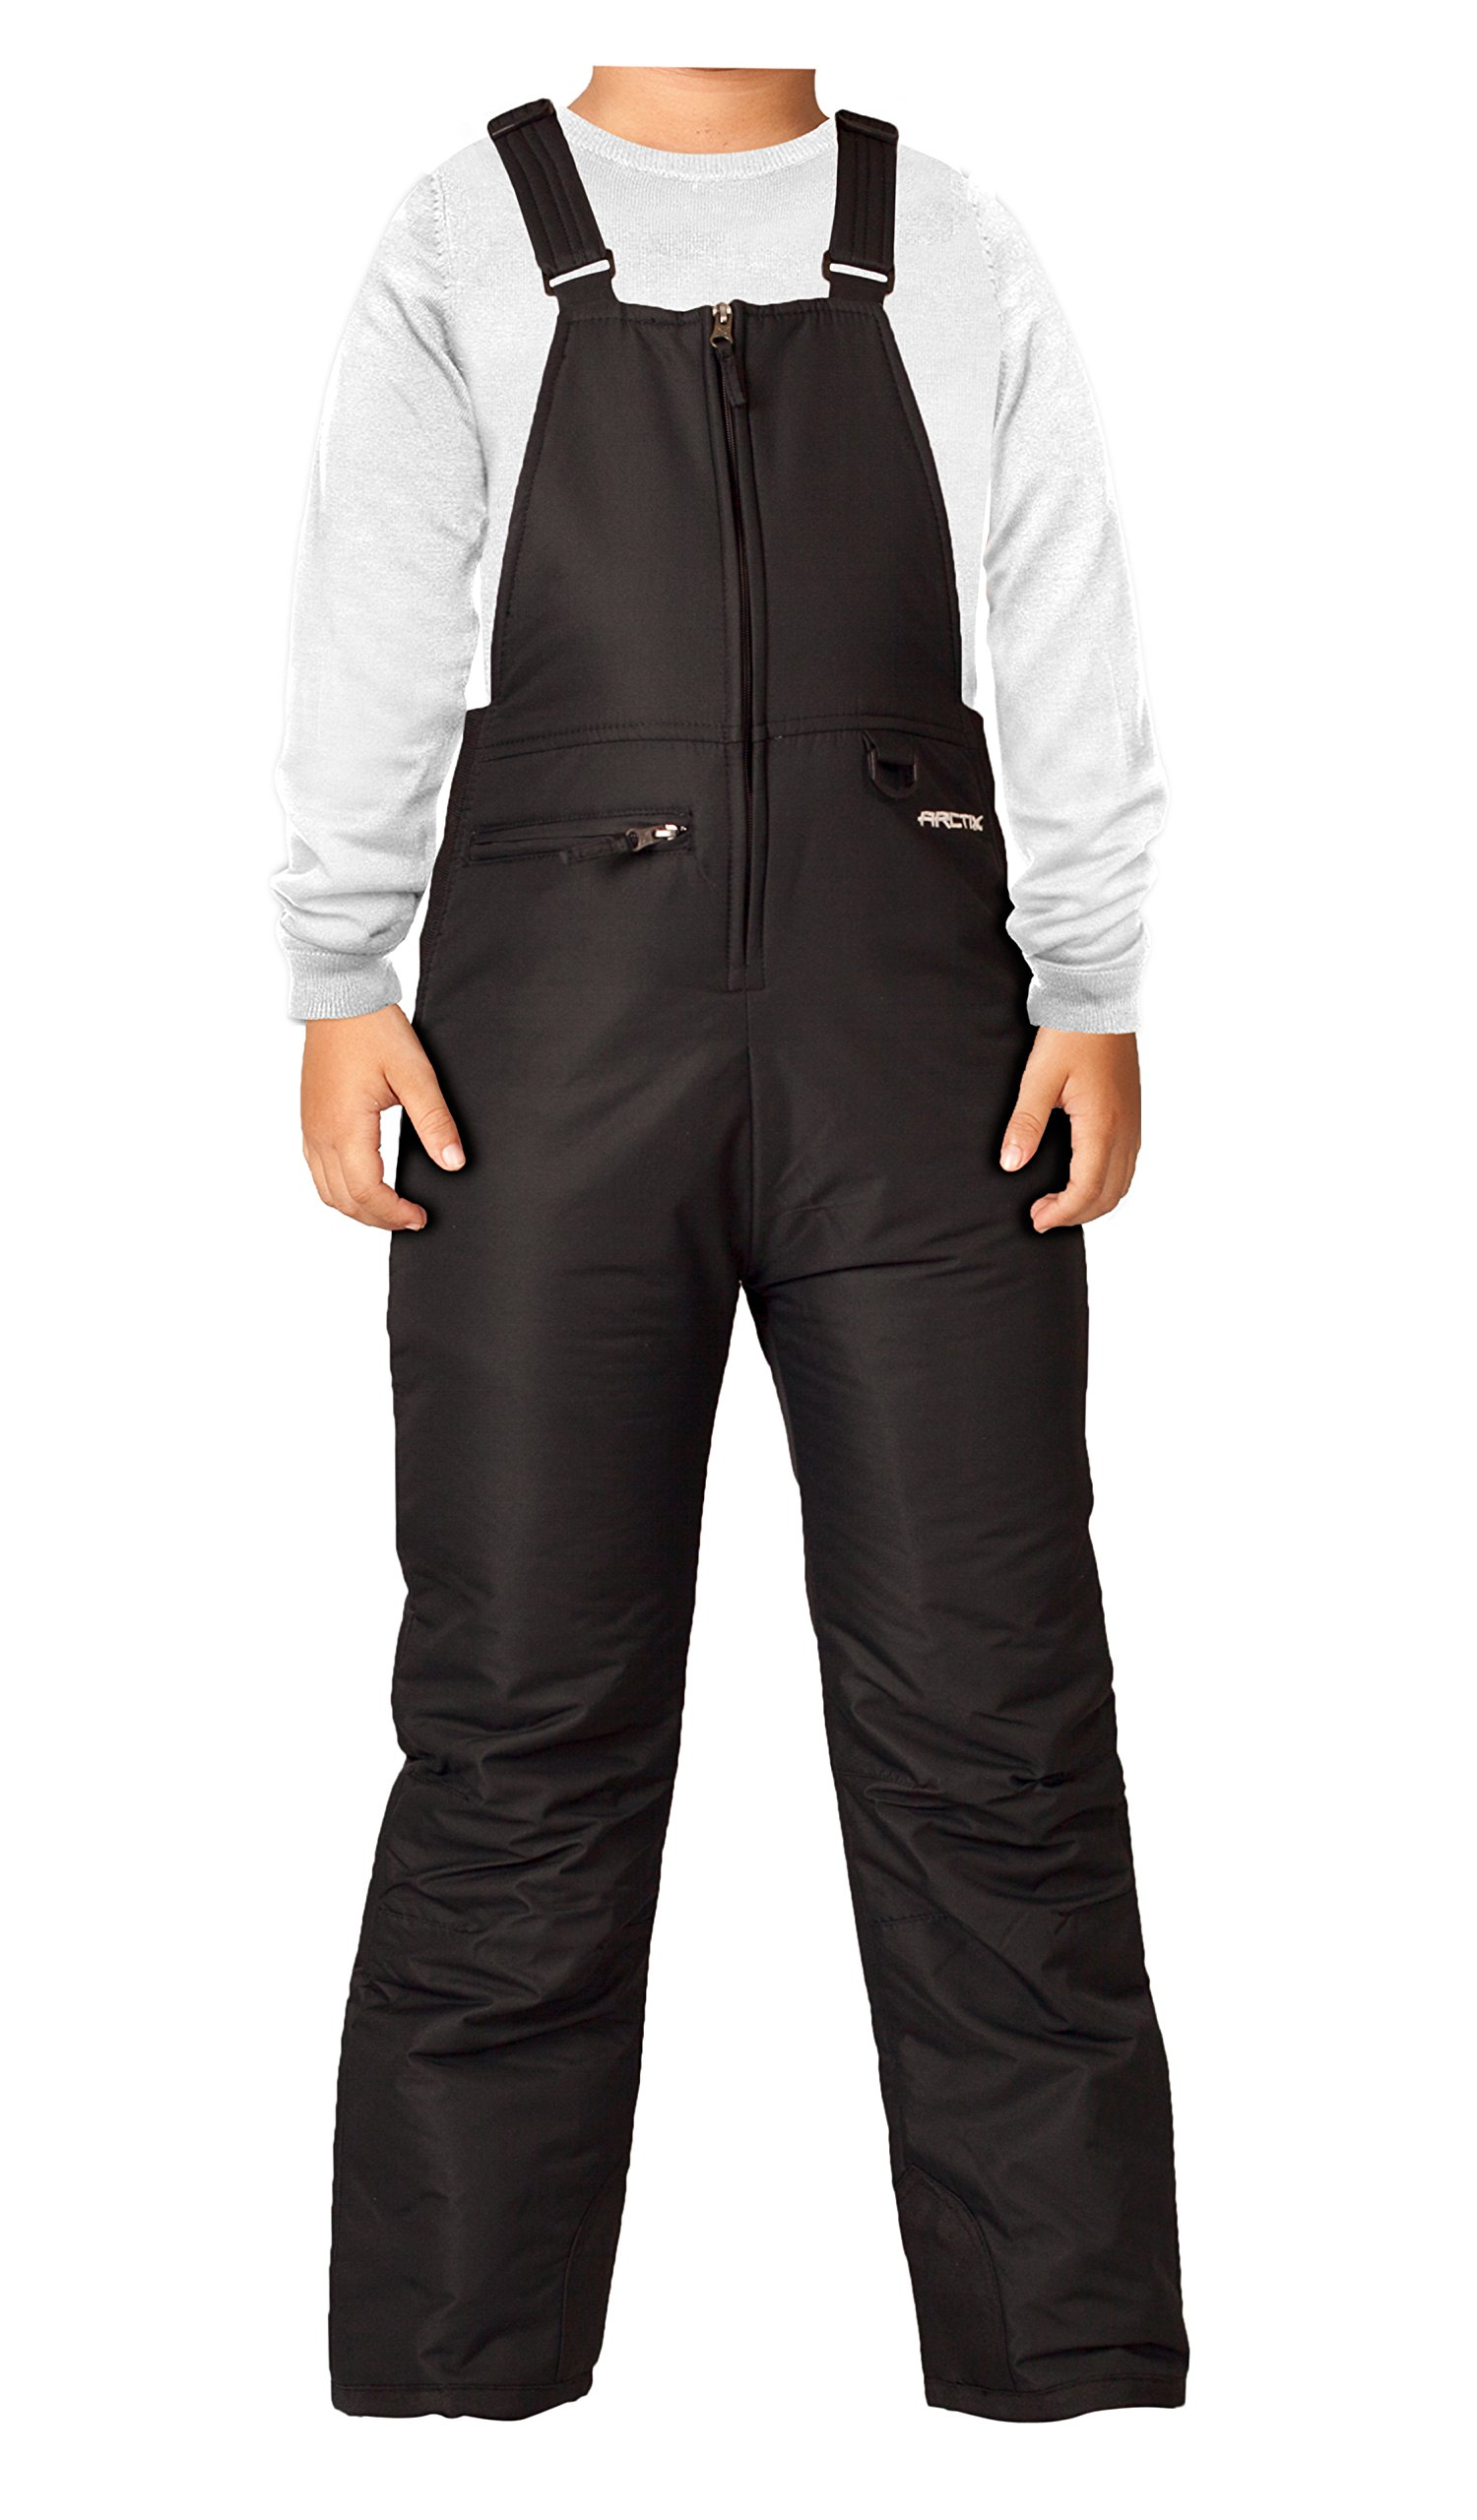 Black X-Large//Husky Arctix Kids Snow Pants with Reinforced Knees and Seat